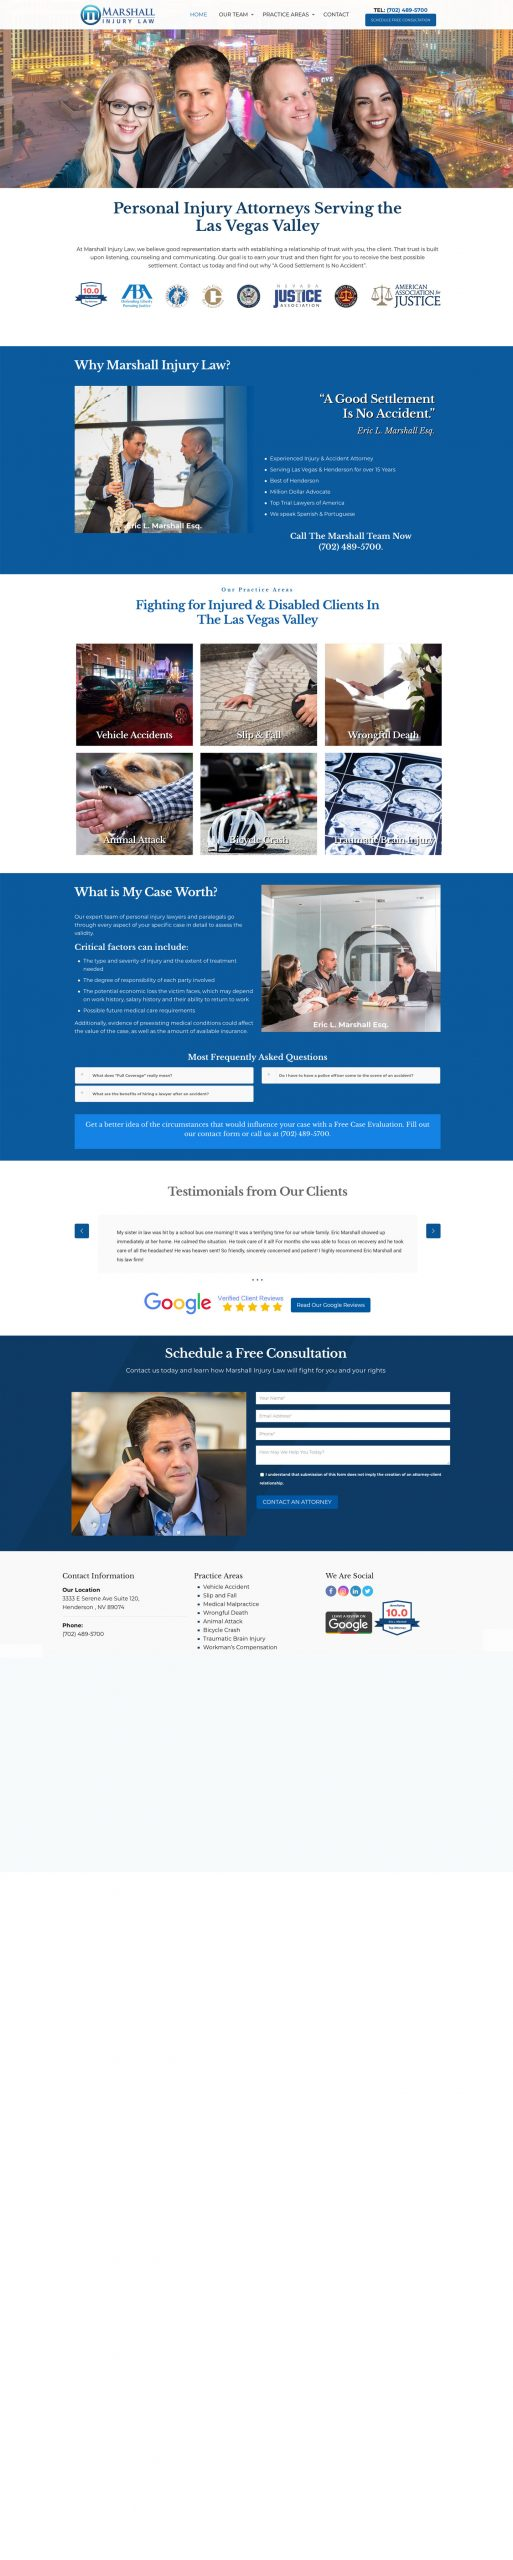 Personal Injury Law Firm Website Design